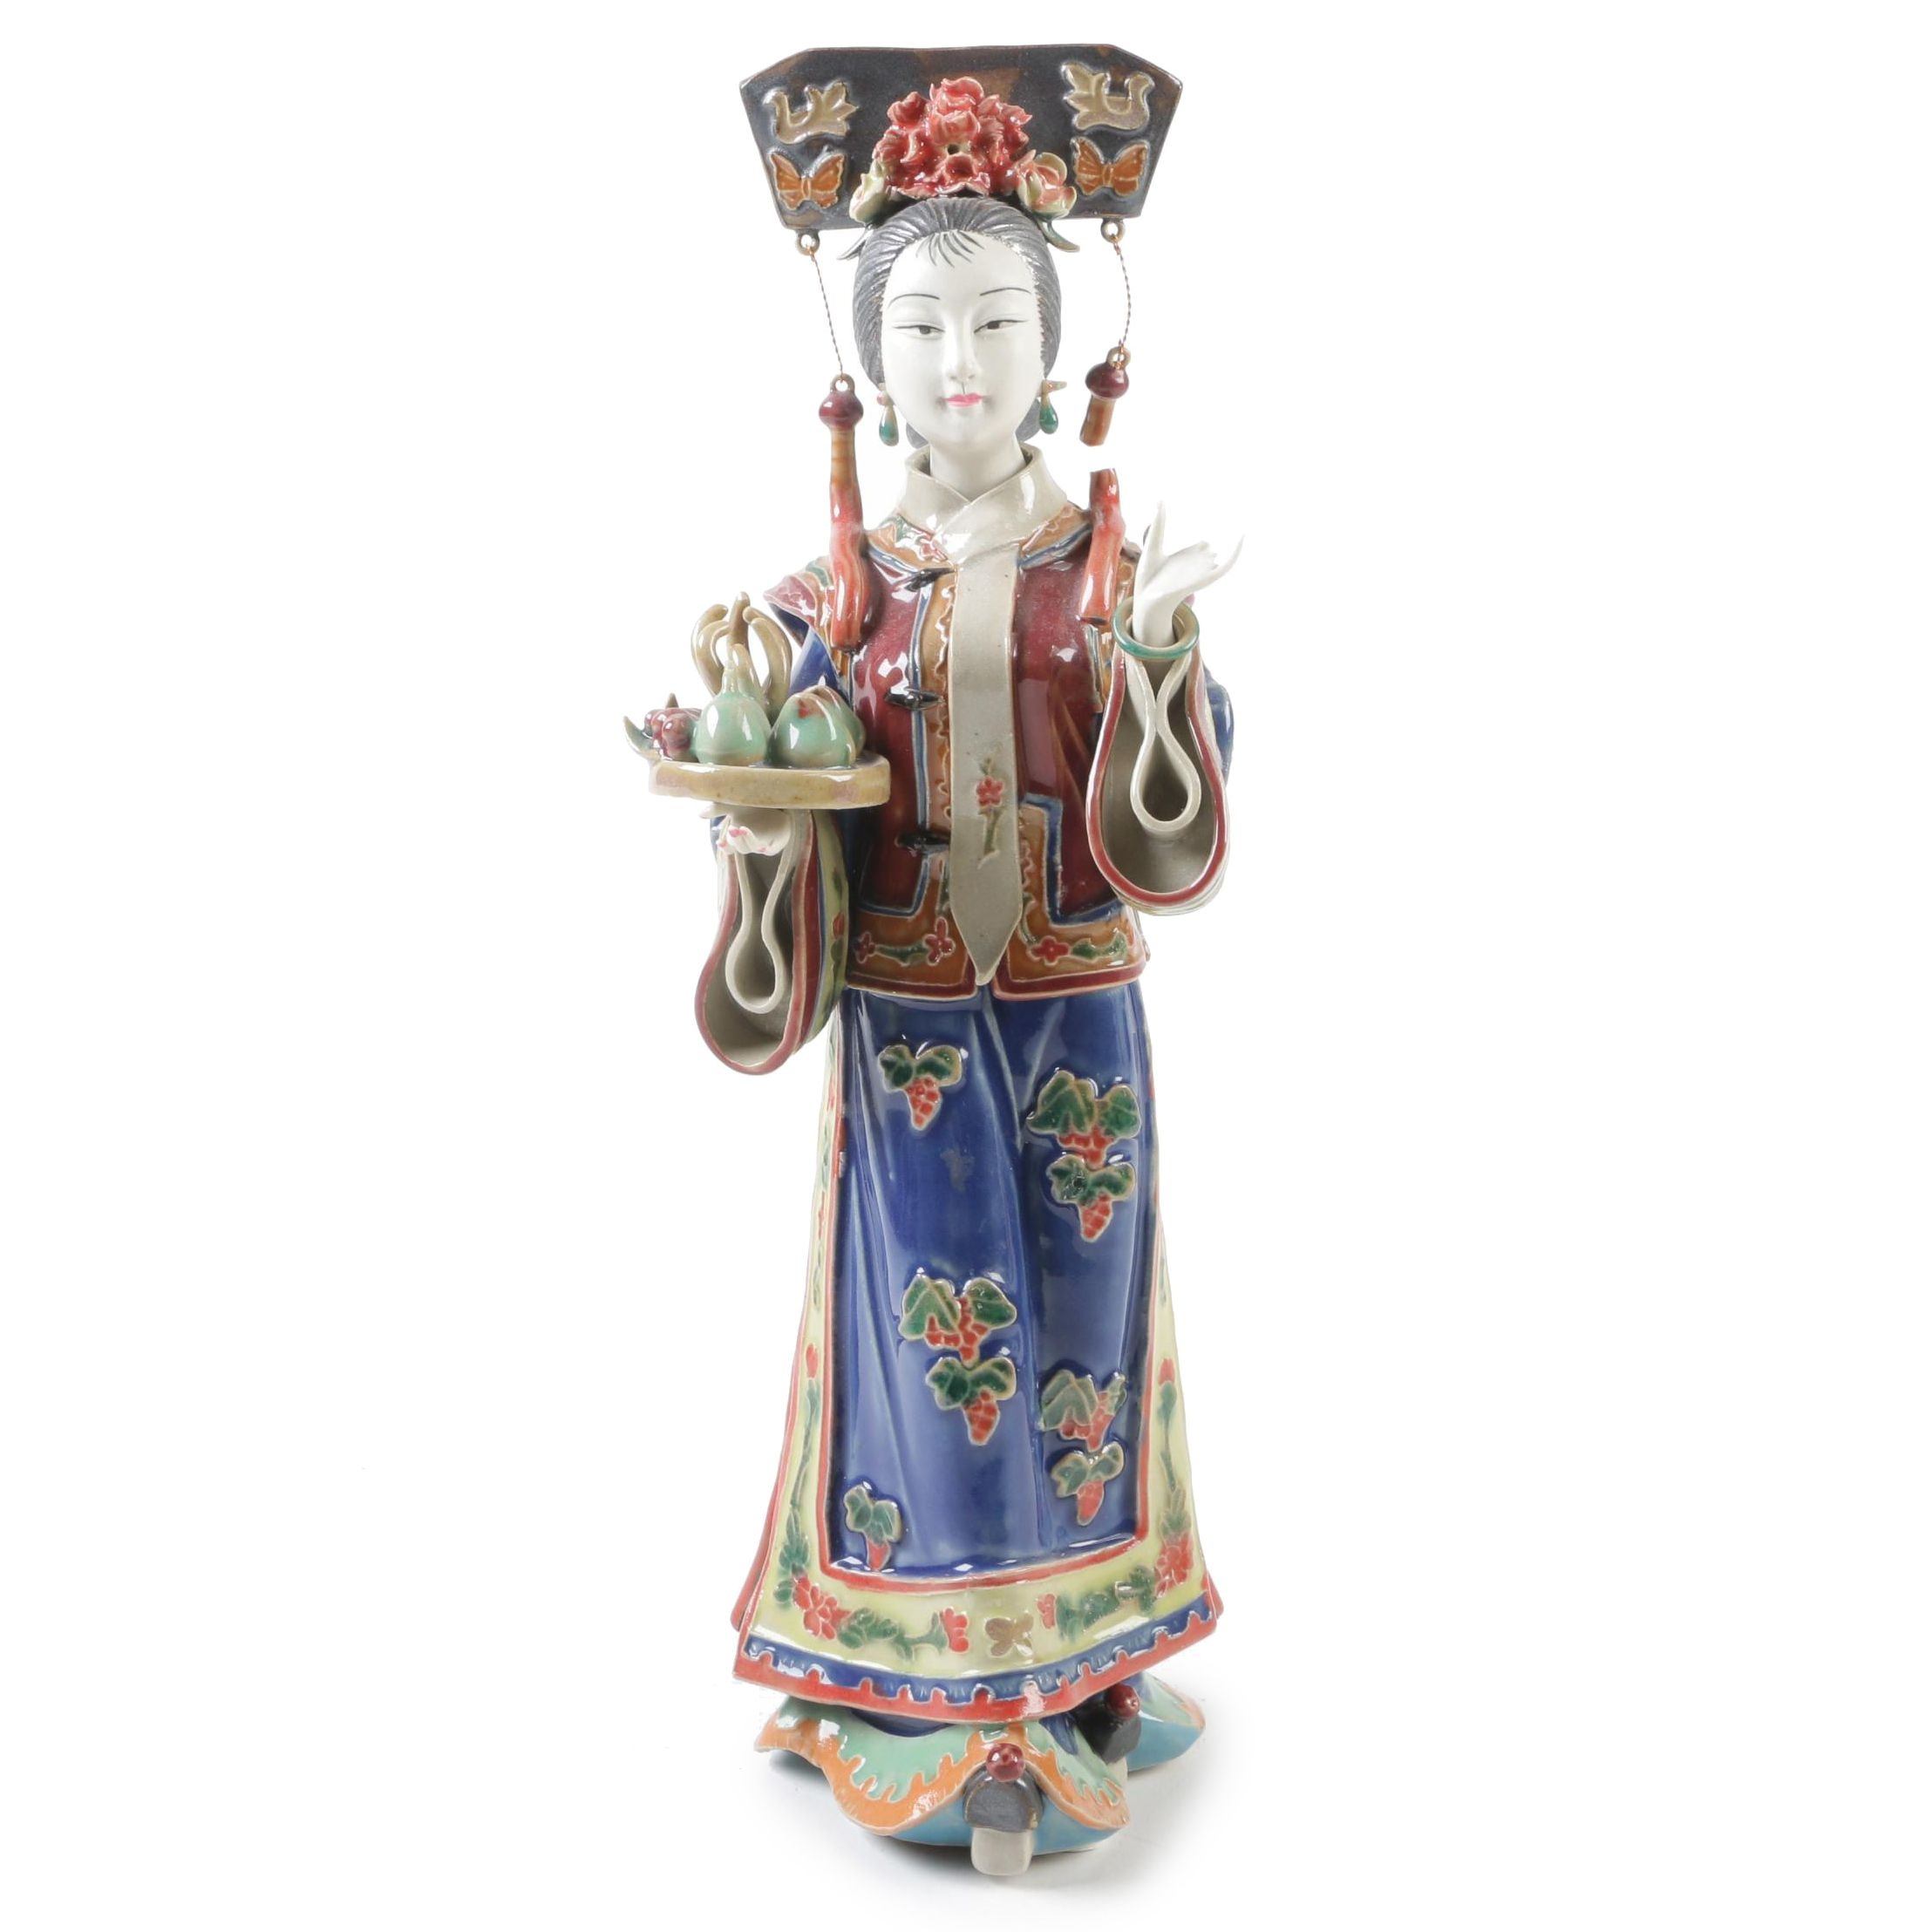 Chinese Shiwan Ware Lady Holding Fruit Tray Figurine by Lin Wei Dong